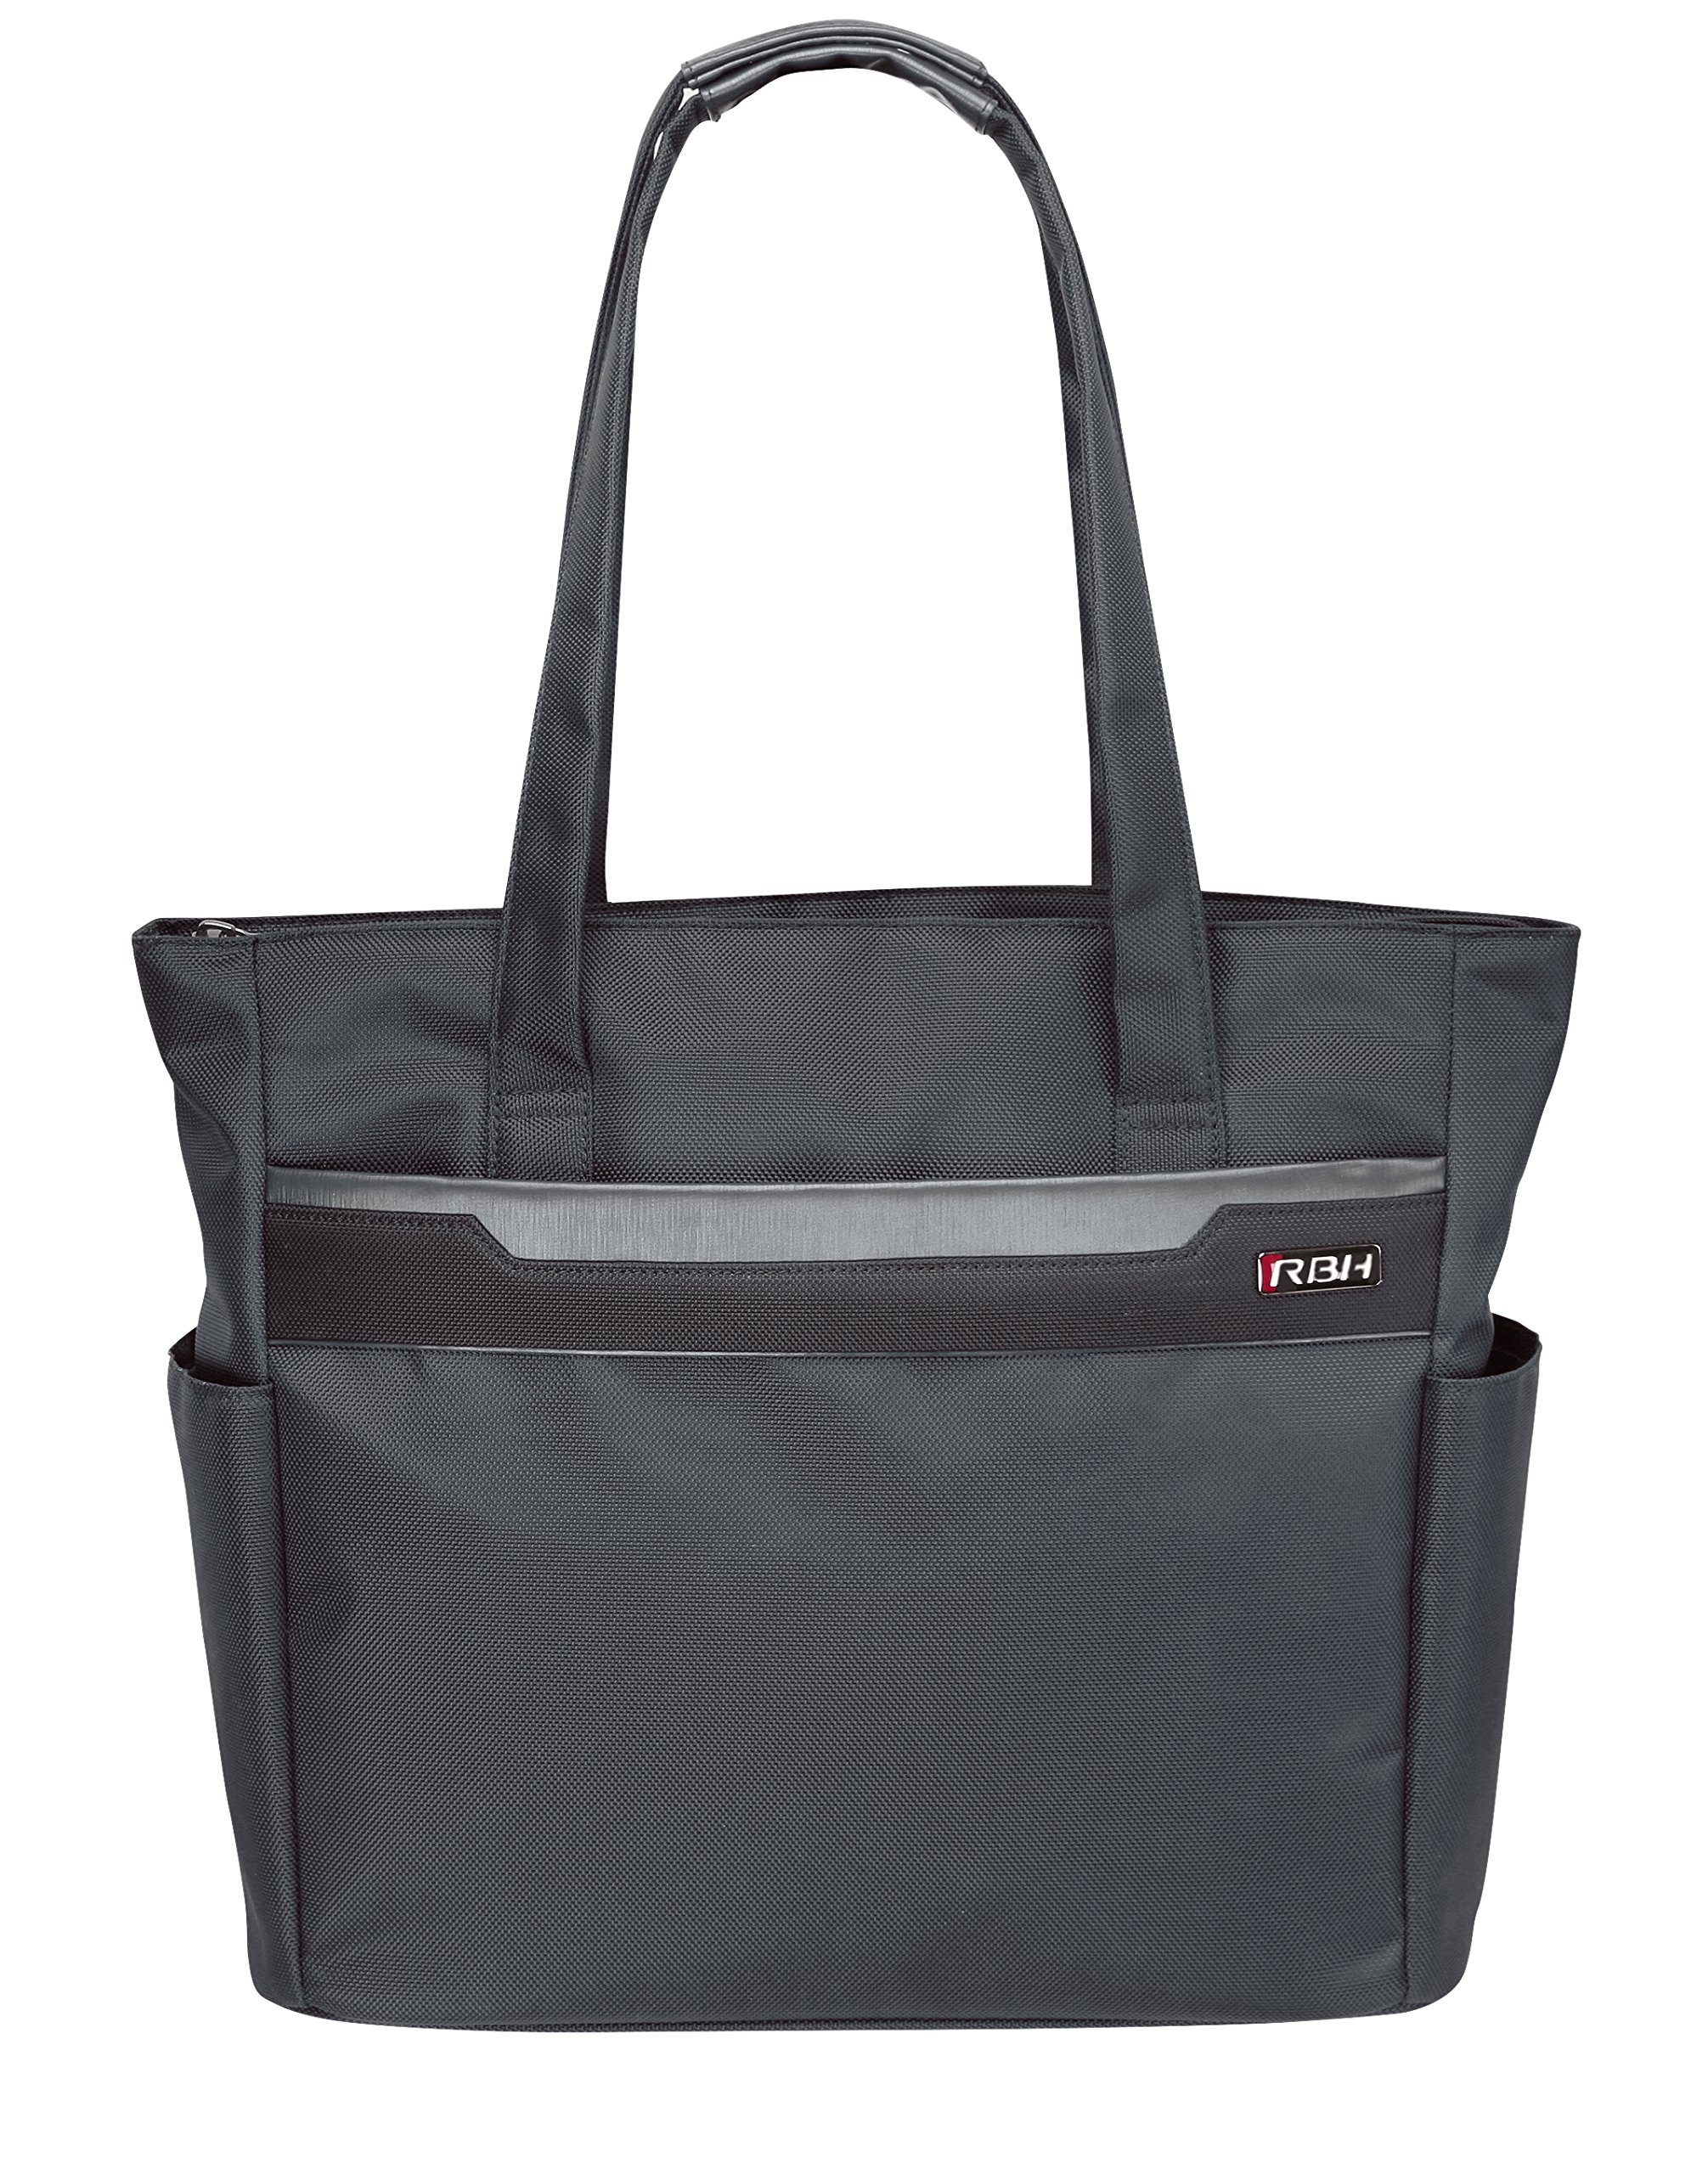 Ricardo Beverly Hills Bel Aire 18-Inch Shopper Tote, Charcoal, One Size